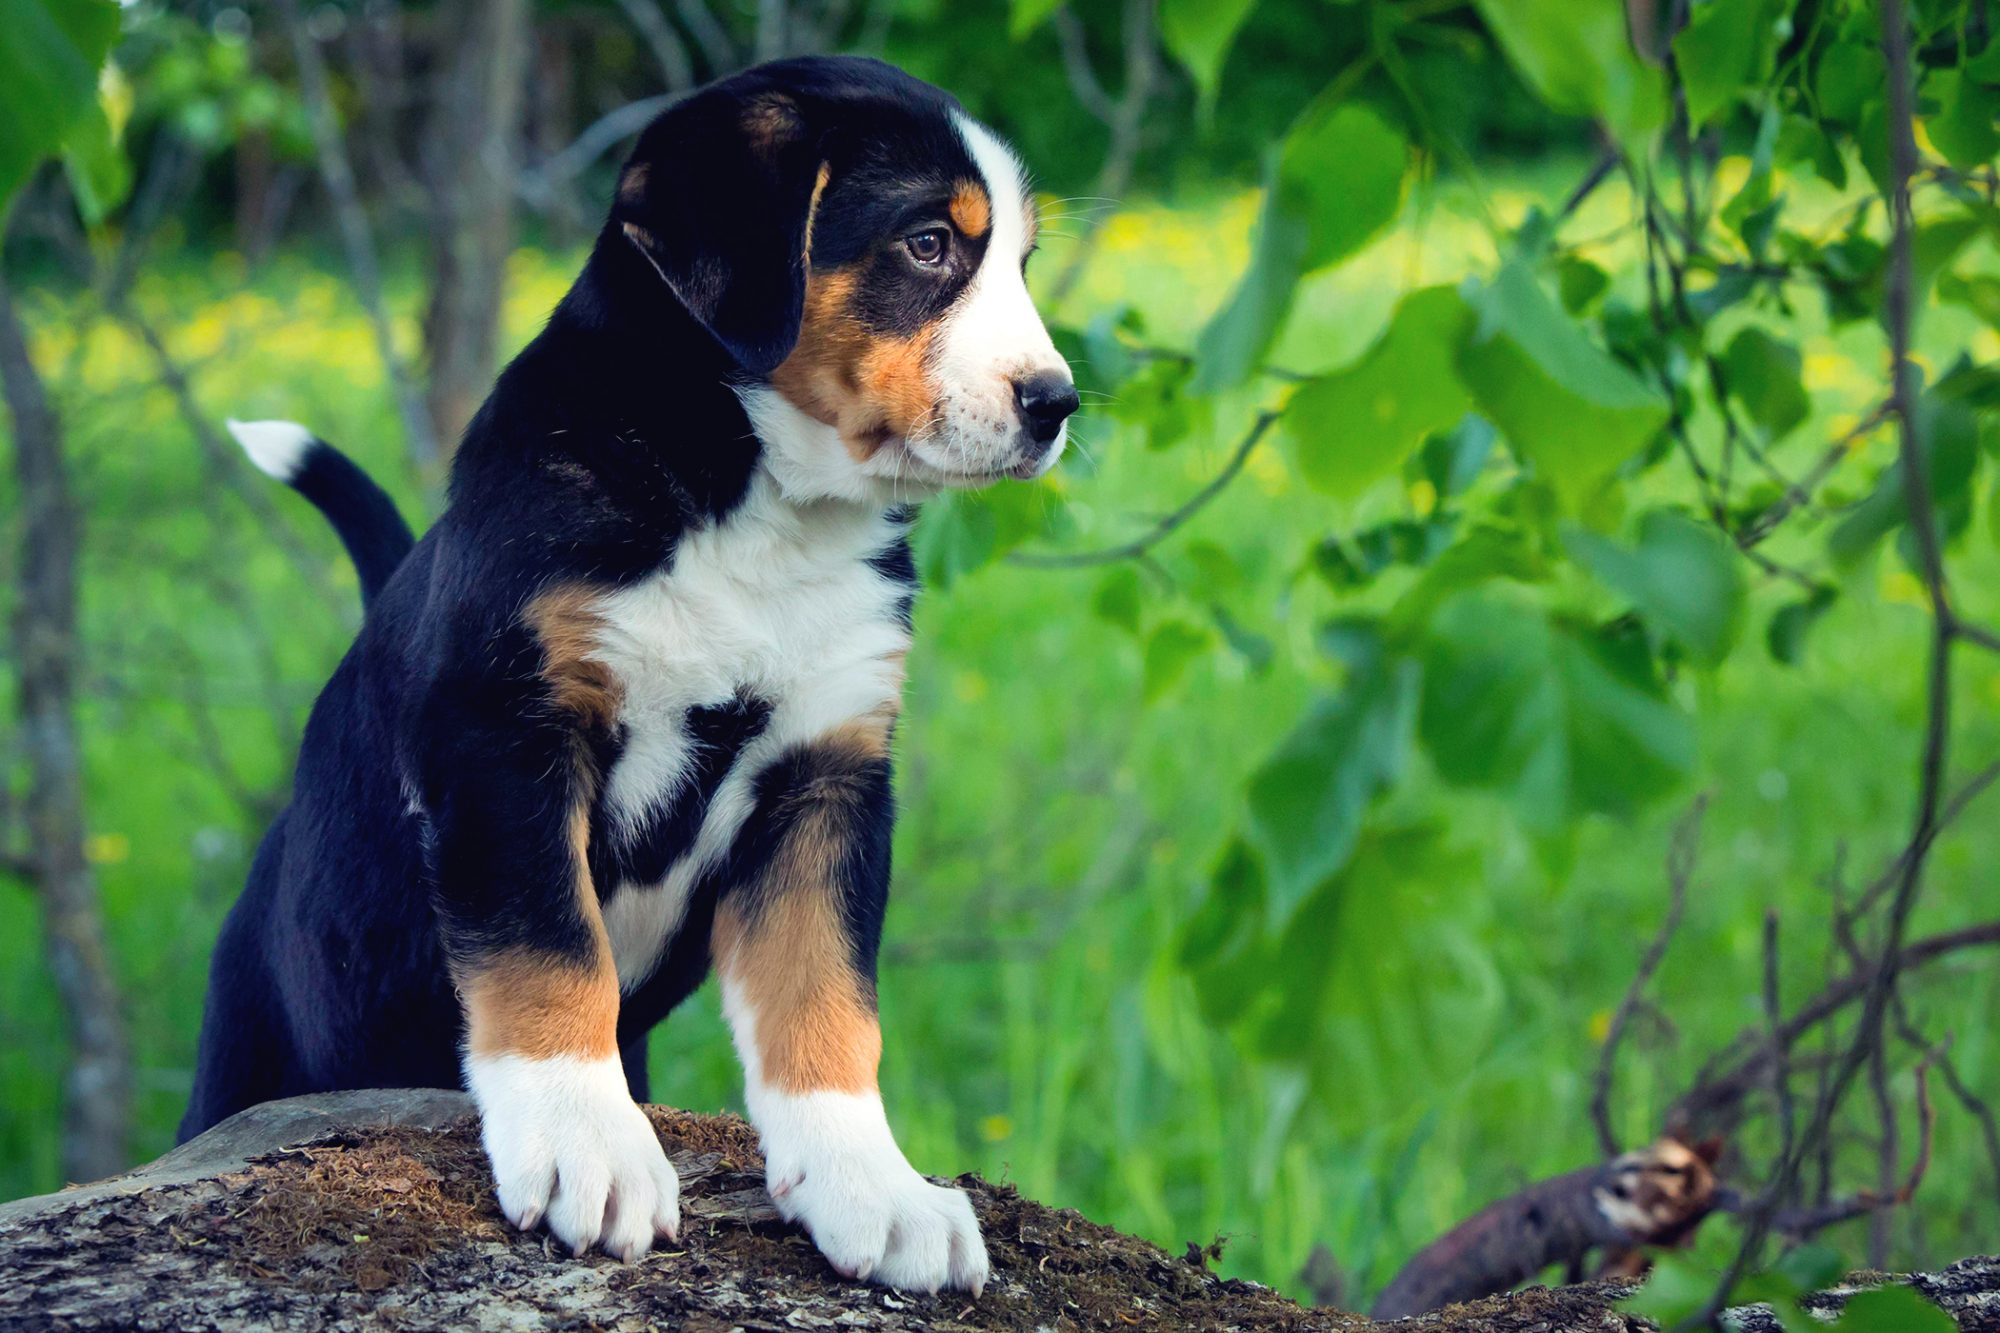 Greater Swiss Mountain Dog puppy stands on fallen log